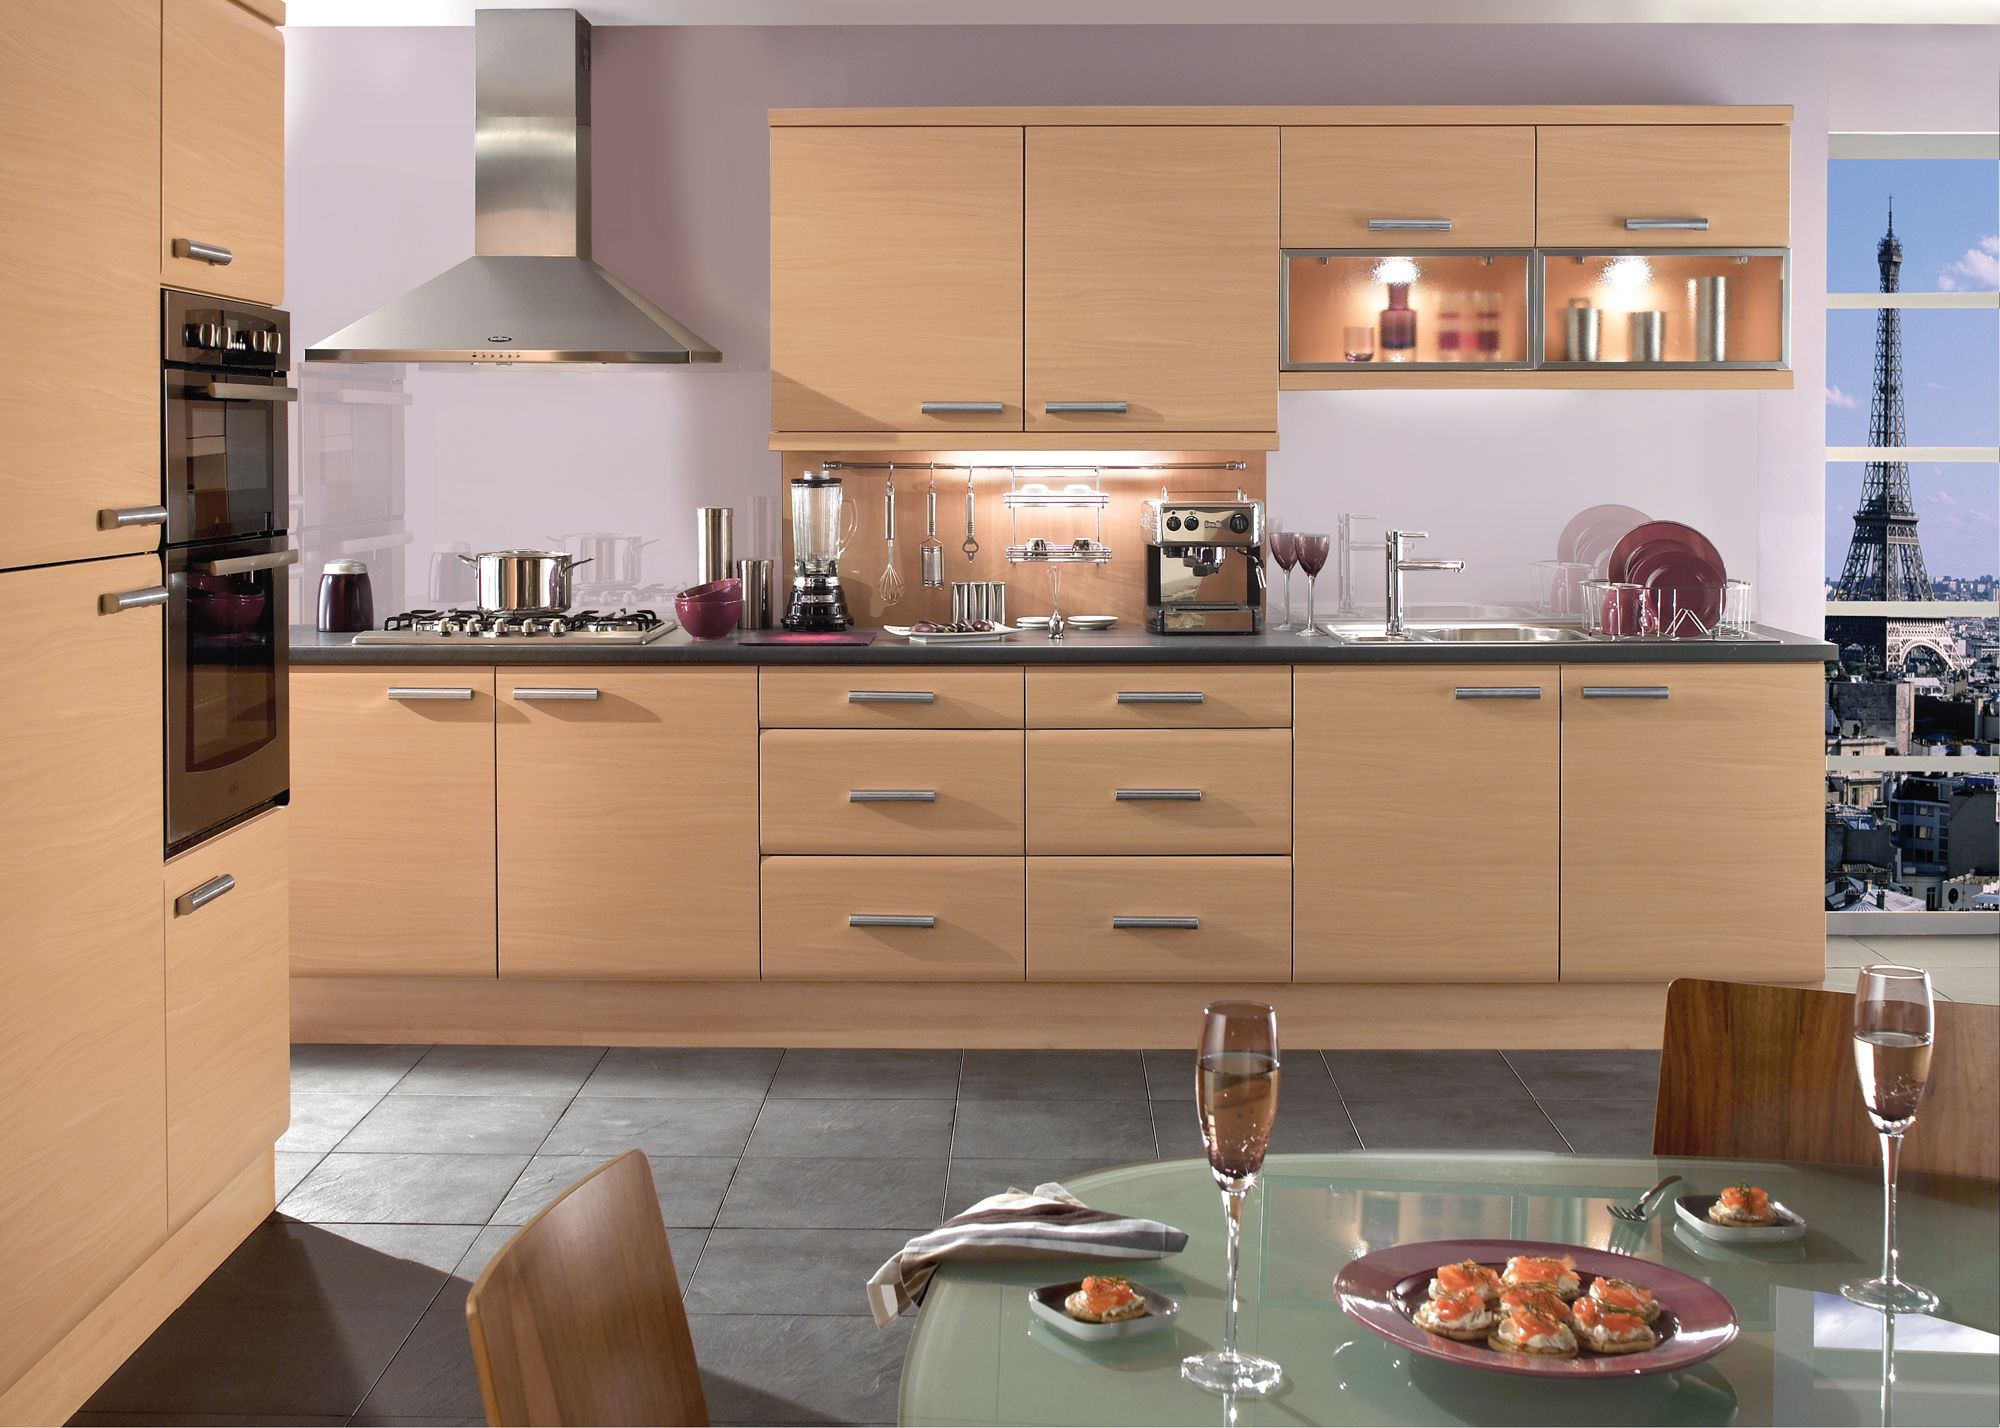 At Town Kitchens We Provide Only The Highest Quality Kitchens,